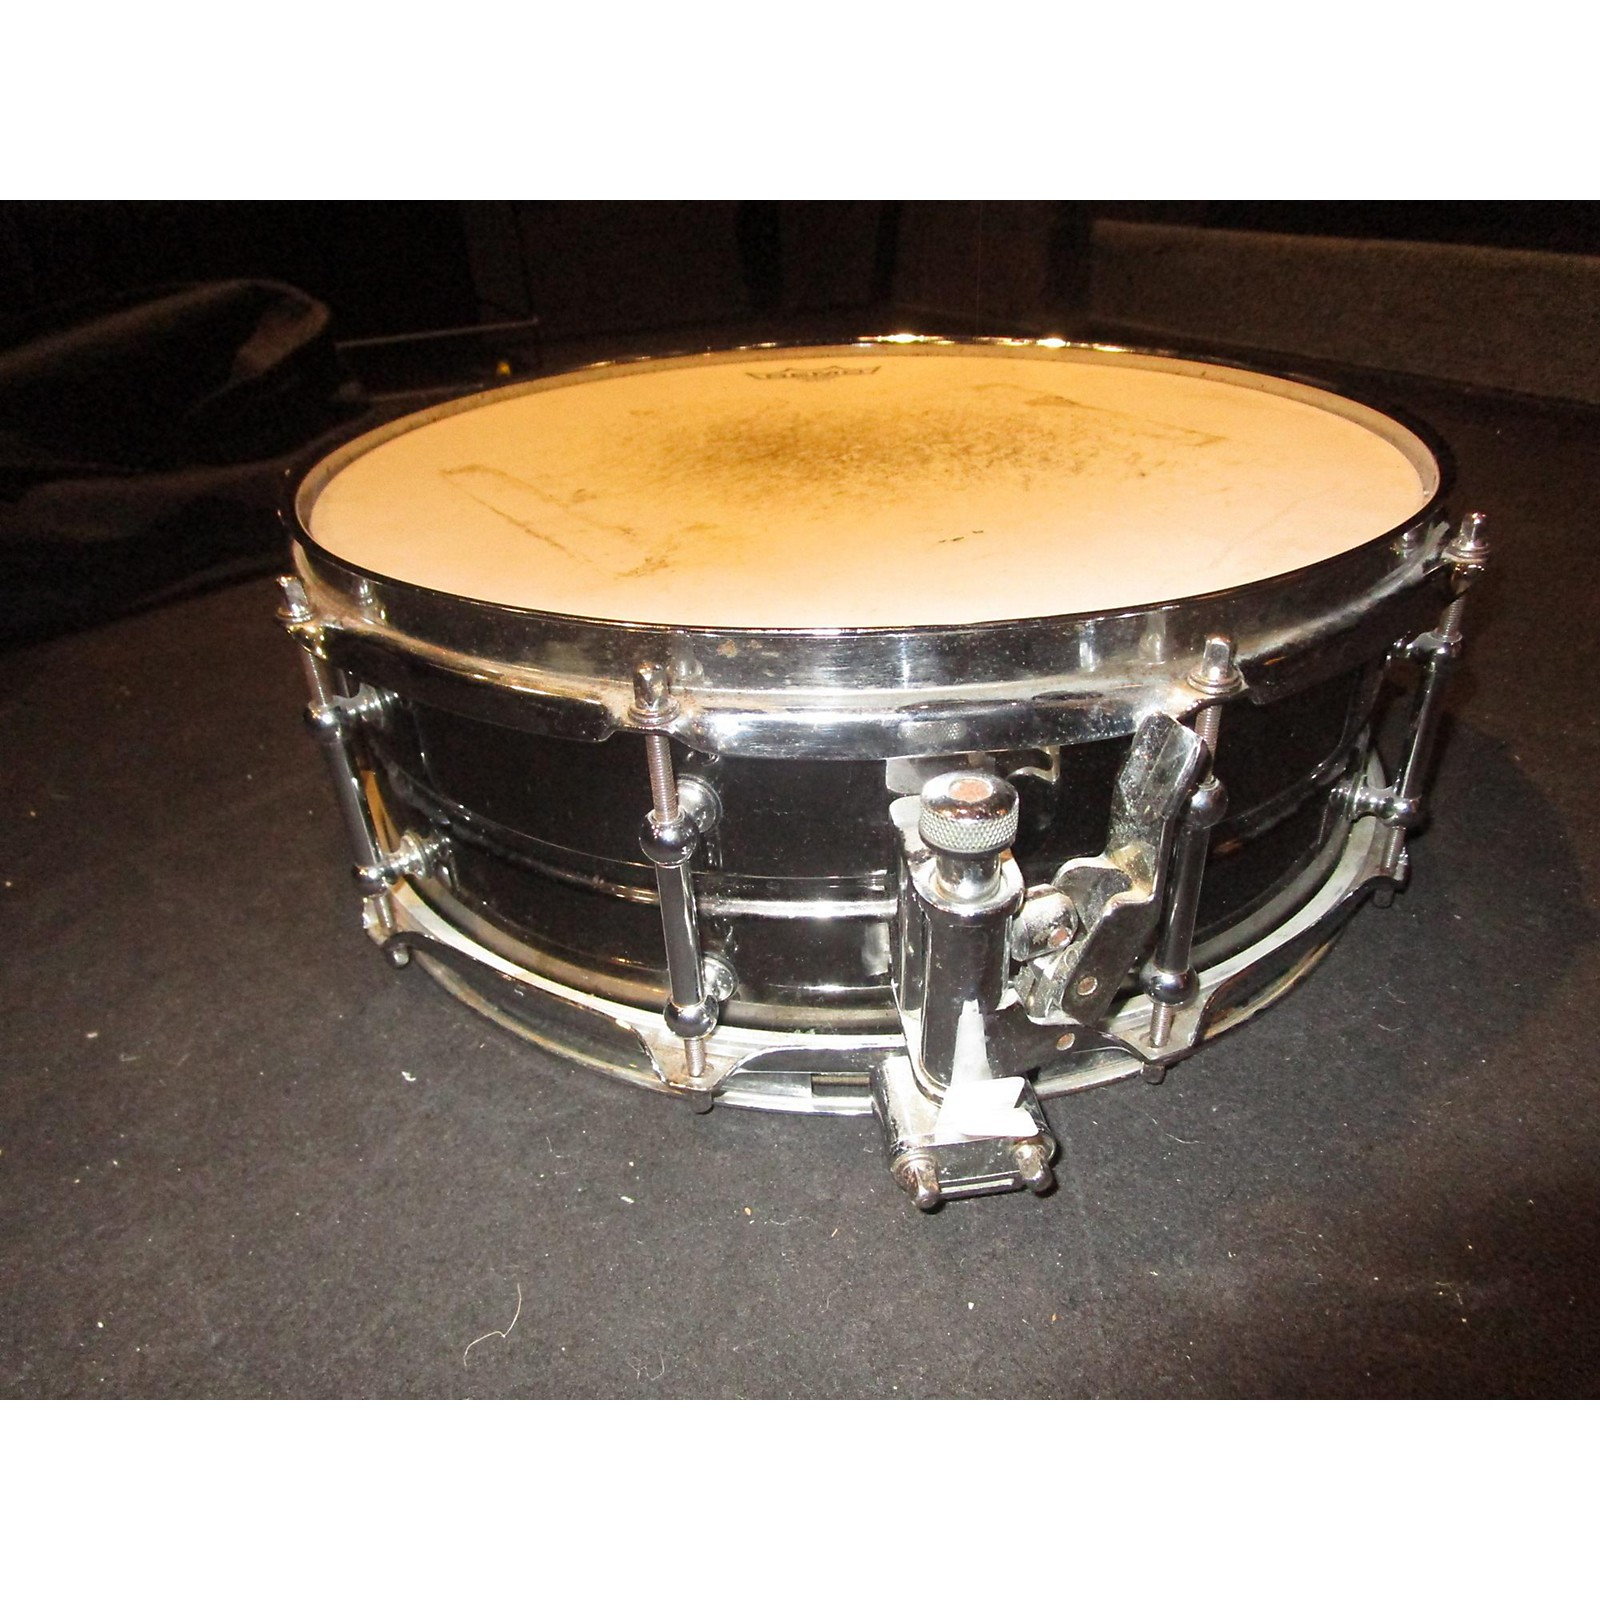 PDP by DW 7X14 ACE Drum